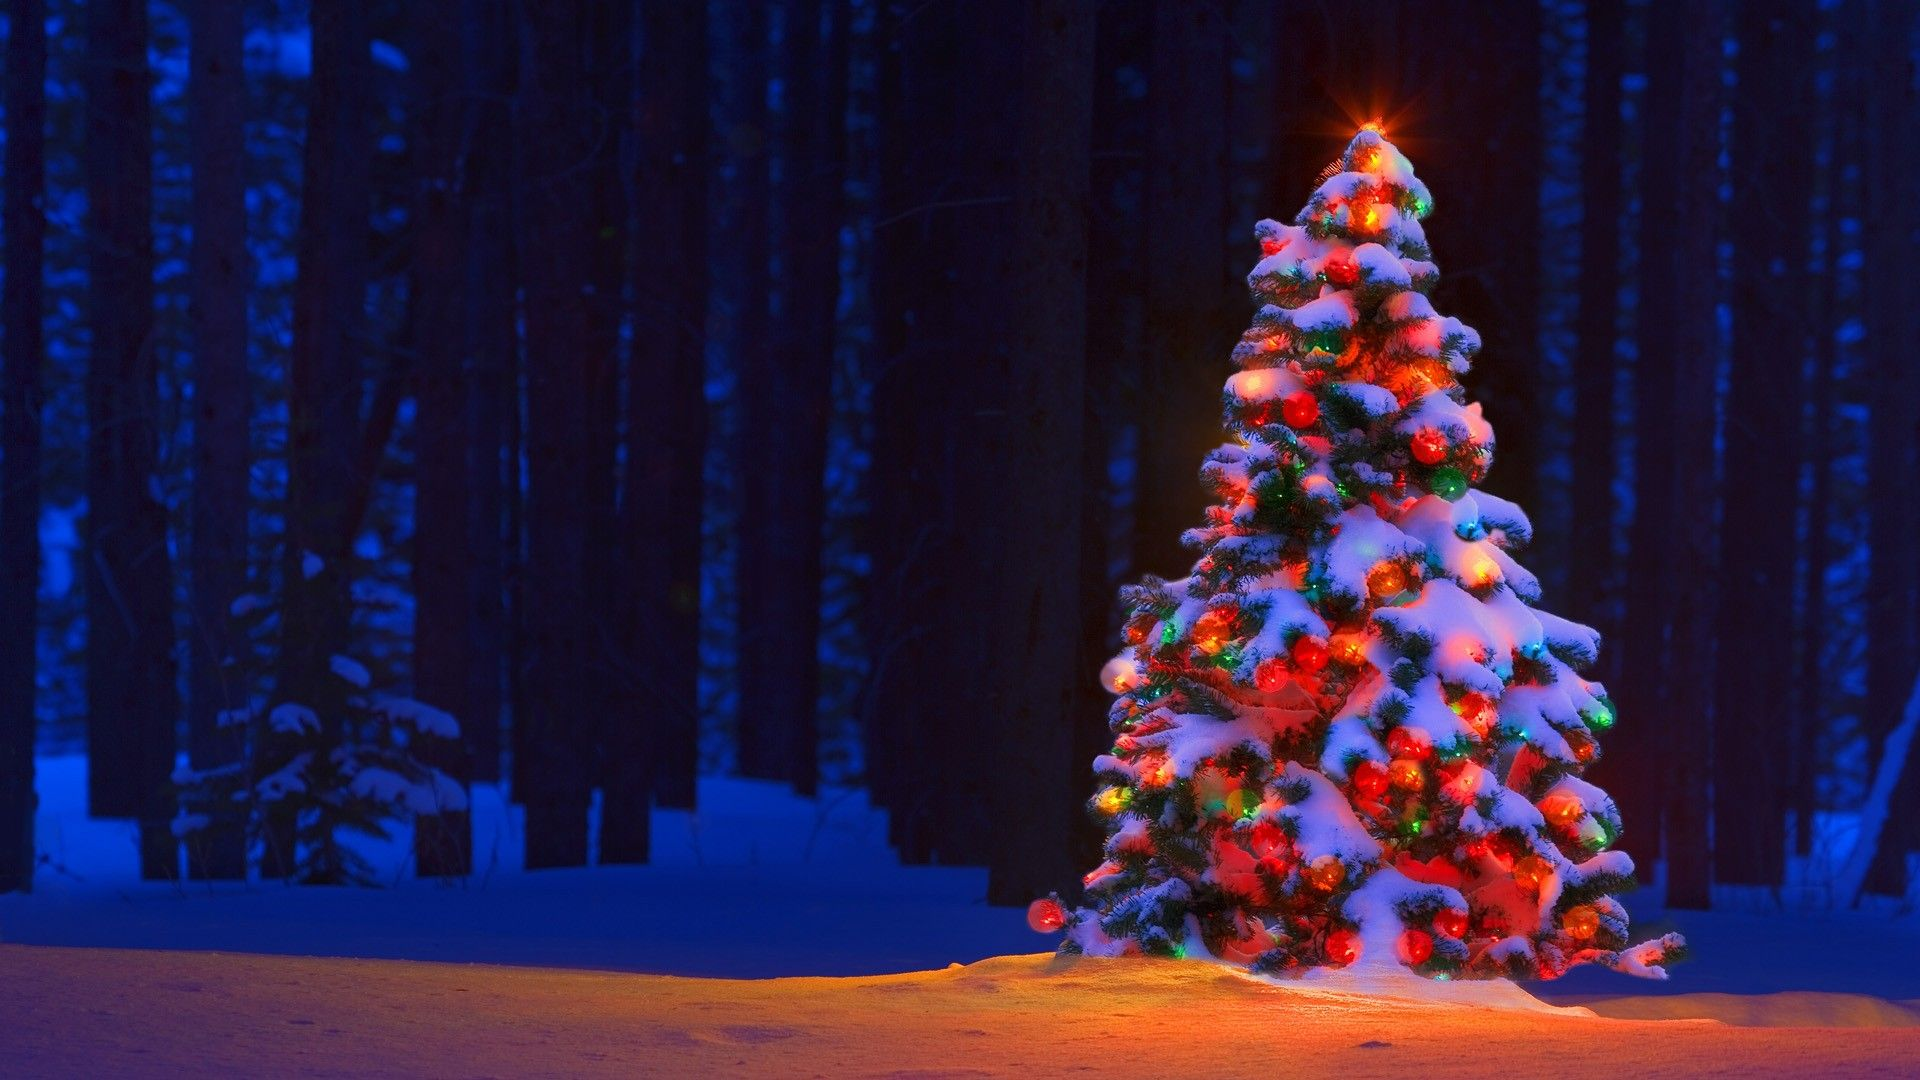 50 Beautiful Christmas tree Wallpapers | Christmas tree, Wallpaper ...